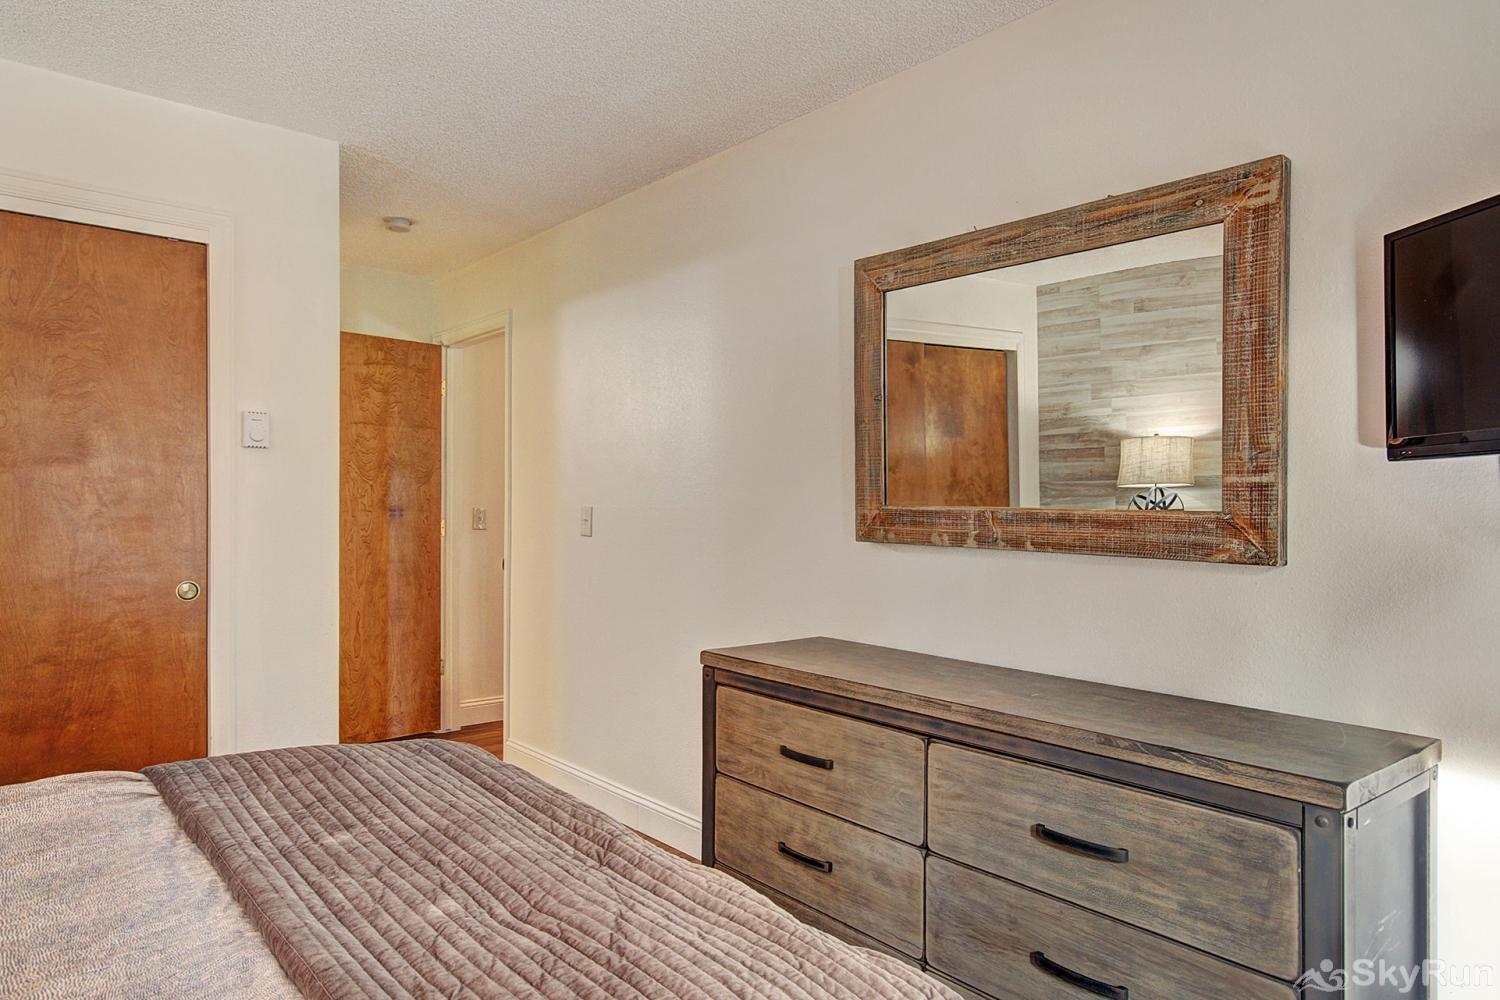 Tyra Summit A2E Queen master suite with flat screen TV and ensuite bath